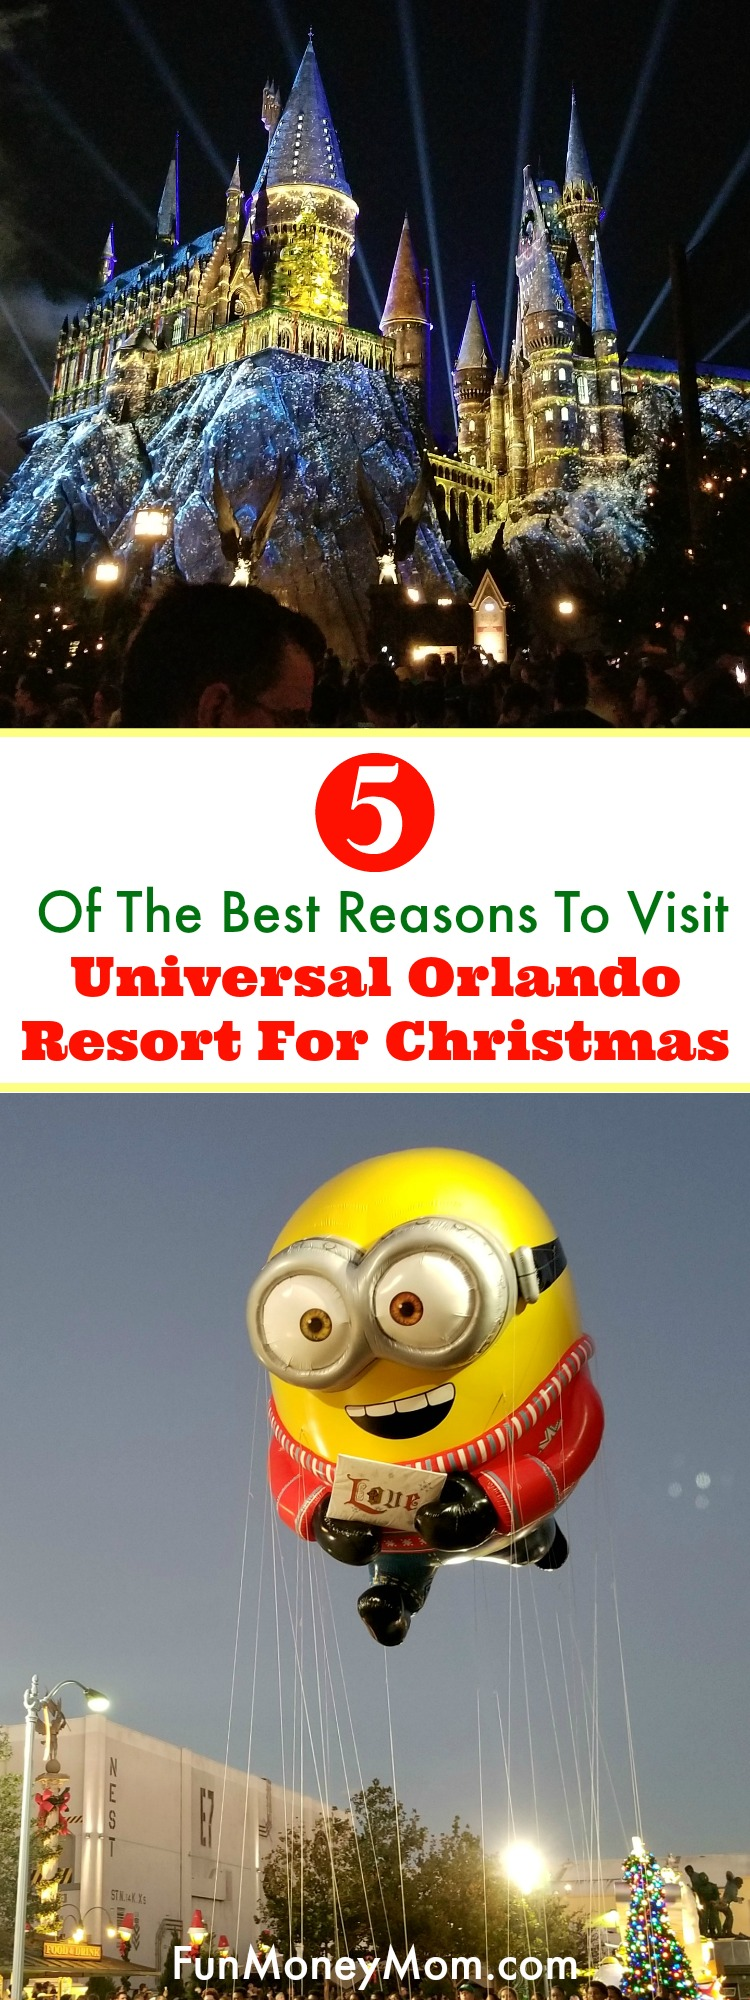 Looking for a fun holiday vacation? Here are five great reasons why you should book that family vacation and celebrate Christmas at Universal Orlando Resort.